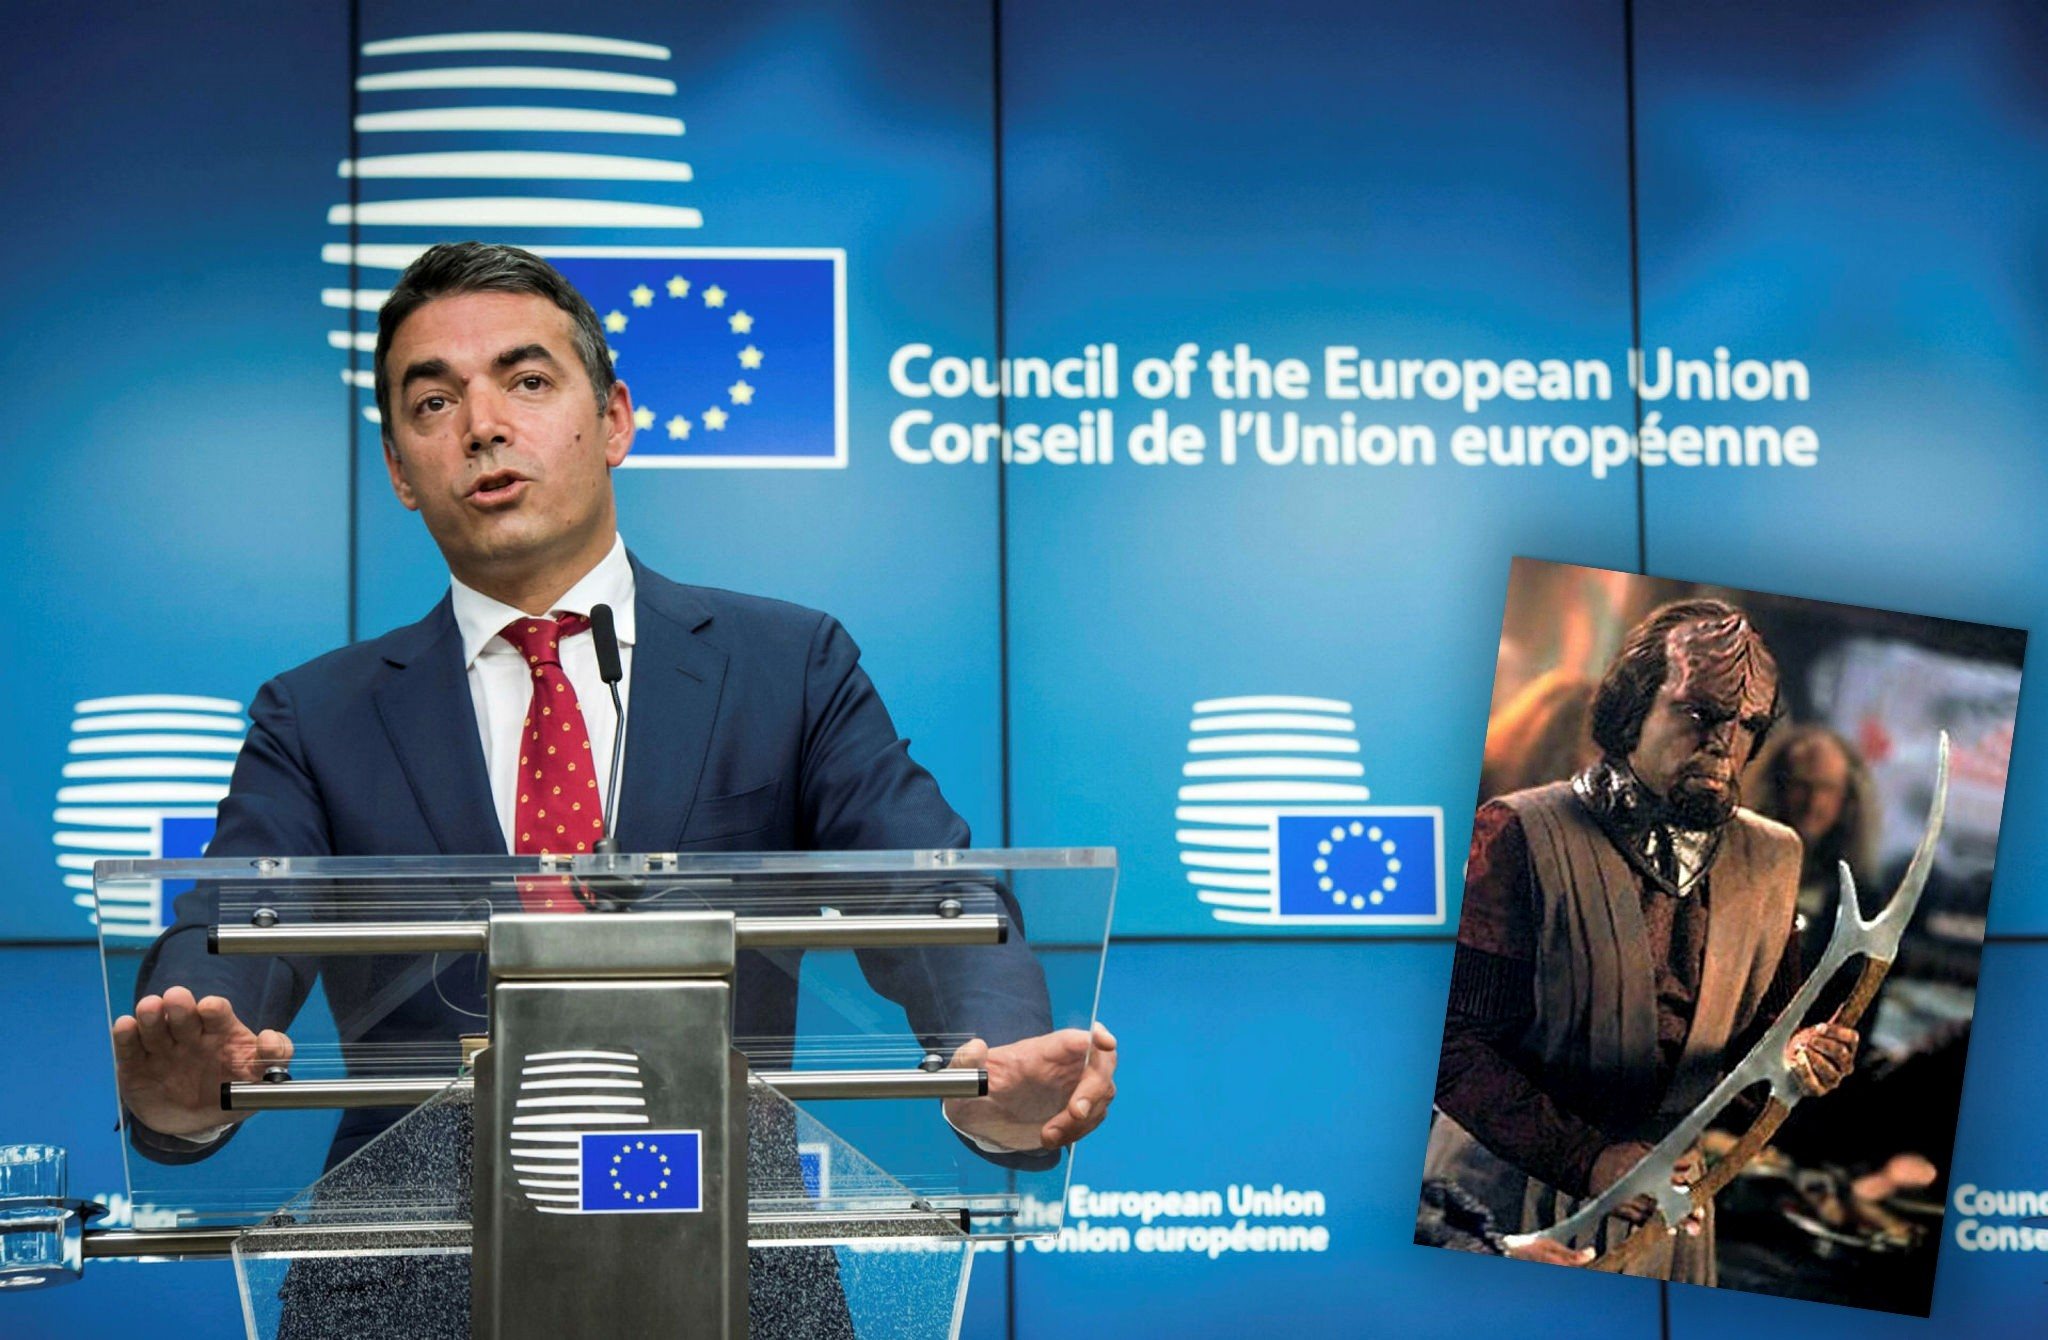 Macedonian FM Nikola Dimitrov gestures during a press conference after a EU-Macedonia Stabilisation and Association Council in Brussels on July 18, 2017. (AFP Photo) A member of the fictional Klingon species is depicted in the bottom right corner.